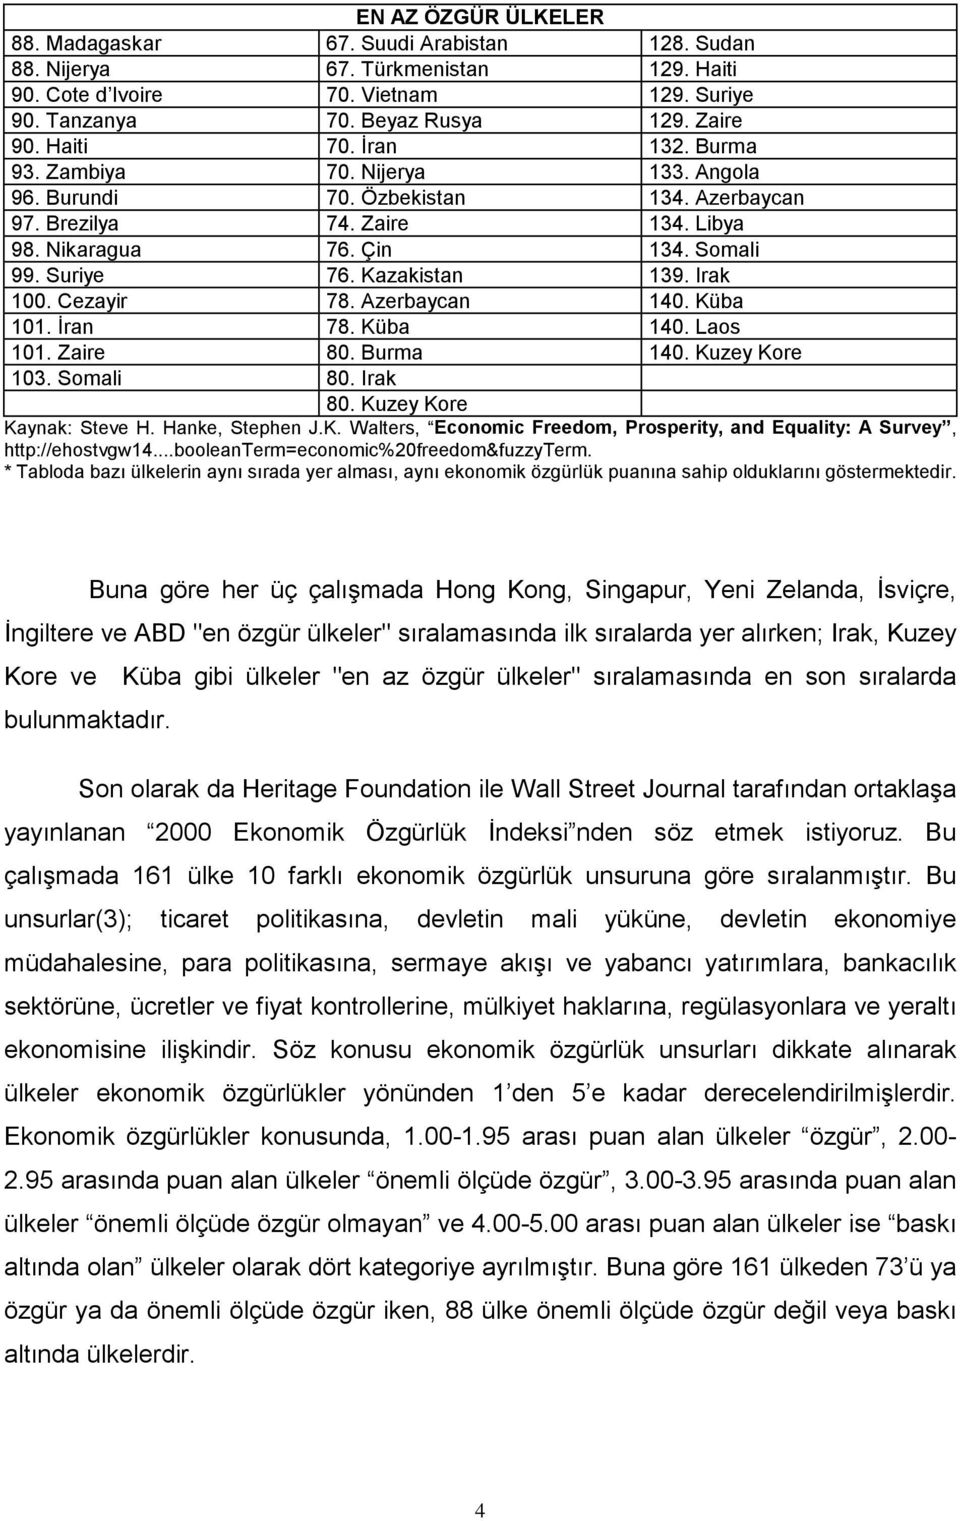 Kazakistan 139. Irak 100. Cezayir 78. Azerbaycan 140. Küba 101. İran 78. Küba 140. Laos 101. Zaire 80. Burma 140. Kuzey Kore 103. Somali 80. Irak 80. Kuzey Kore Kaynak: Steve H. Hanke, Stephen J.K. Walters, Economic Freedom, Prosperity, and Equality: A Survey, http://ehostvgw14.